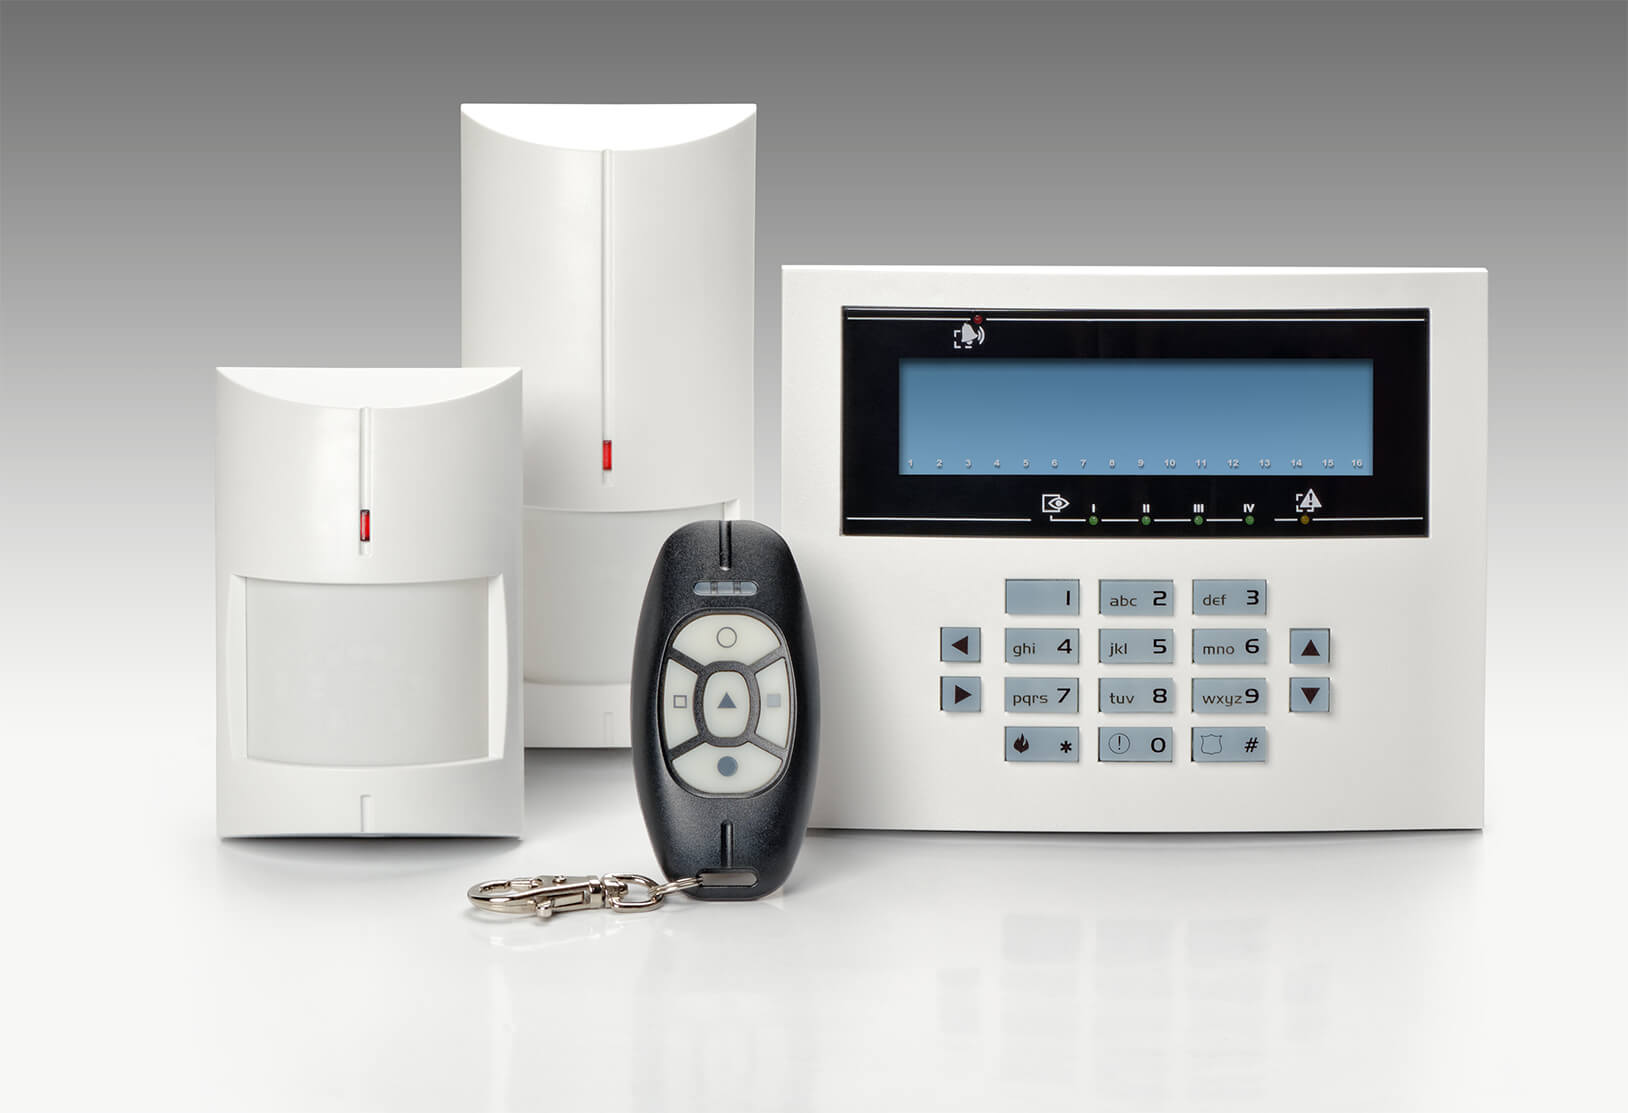 Commercial Burglar Alarms For Business in Woodford E18  - Local Woodford E18 burglar alarm company.Call 02078872244 - Dedicated to Safety & Security. Companies, shops and homes ..